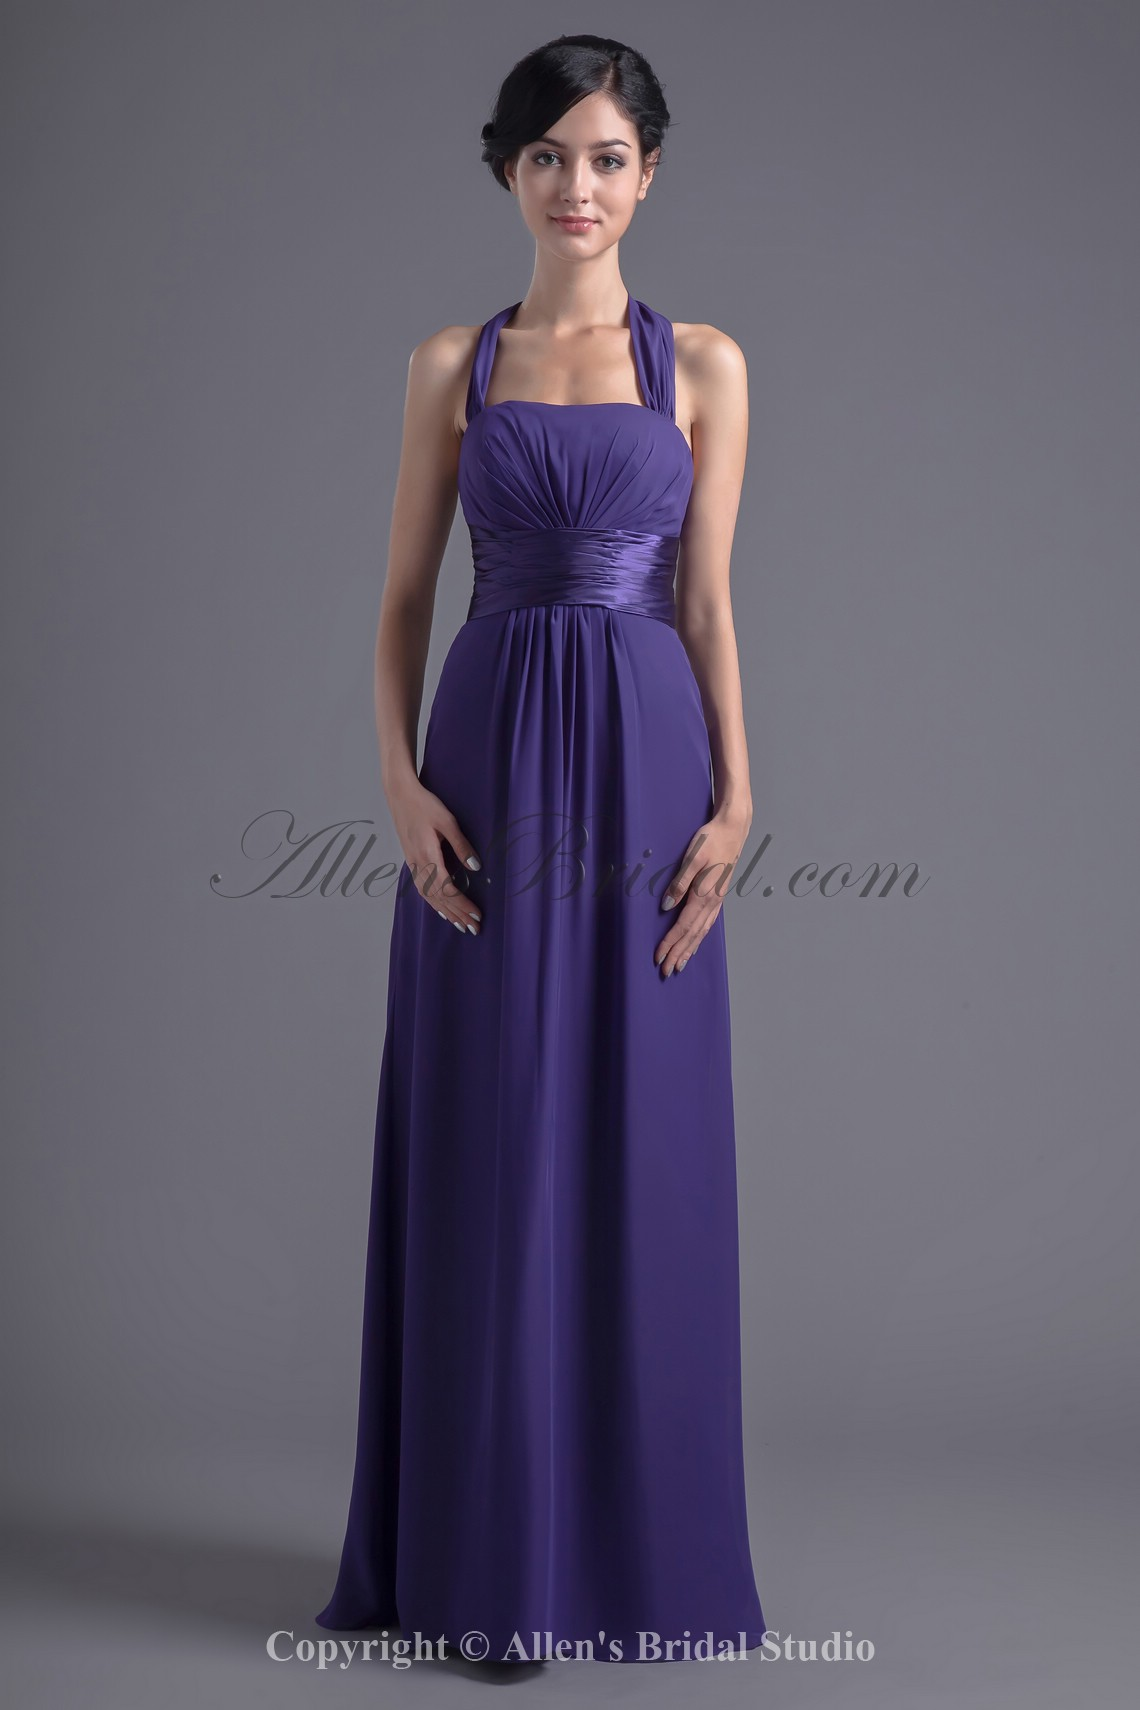 /10-73/chiffon-halter-neckline-column-floor-length-prom-dress.jpg